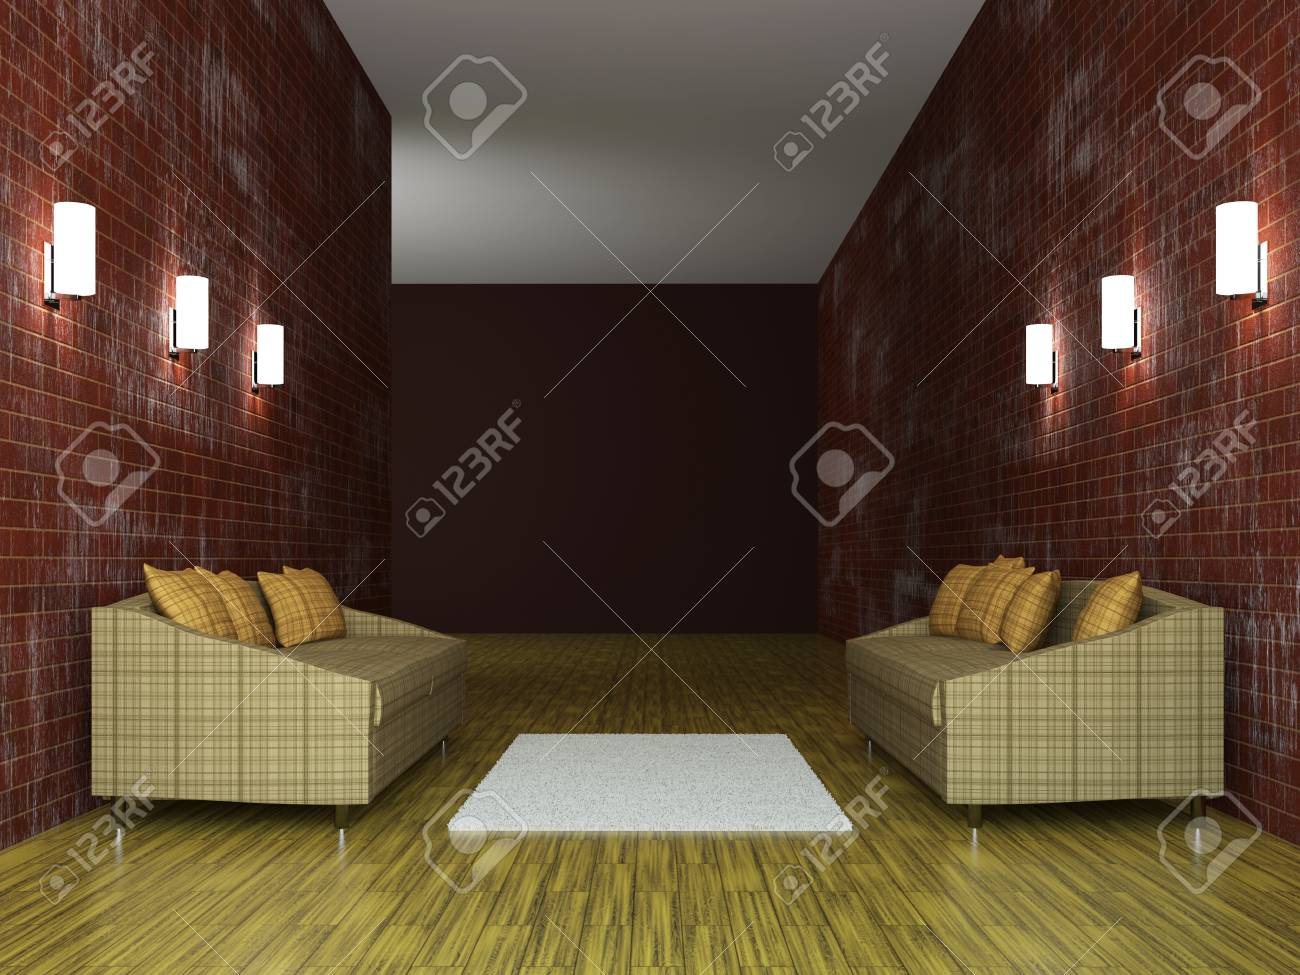 Sofas with pillows near the brick wall Stock Photo - 15523295